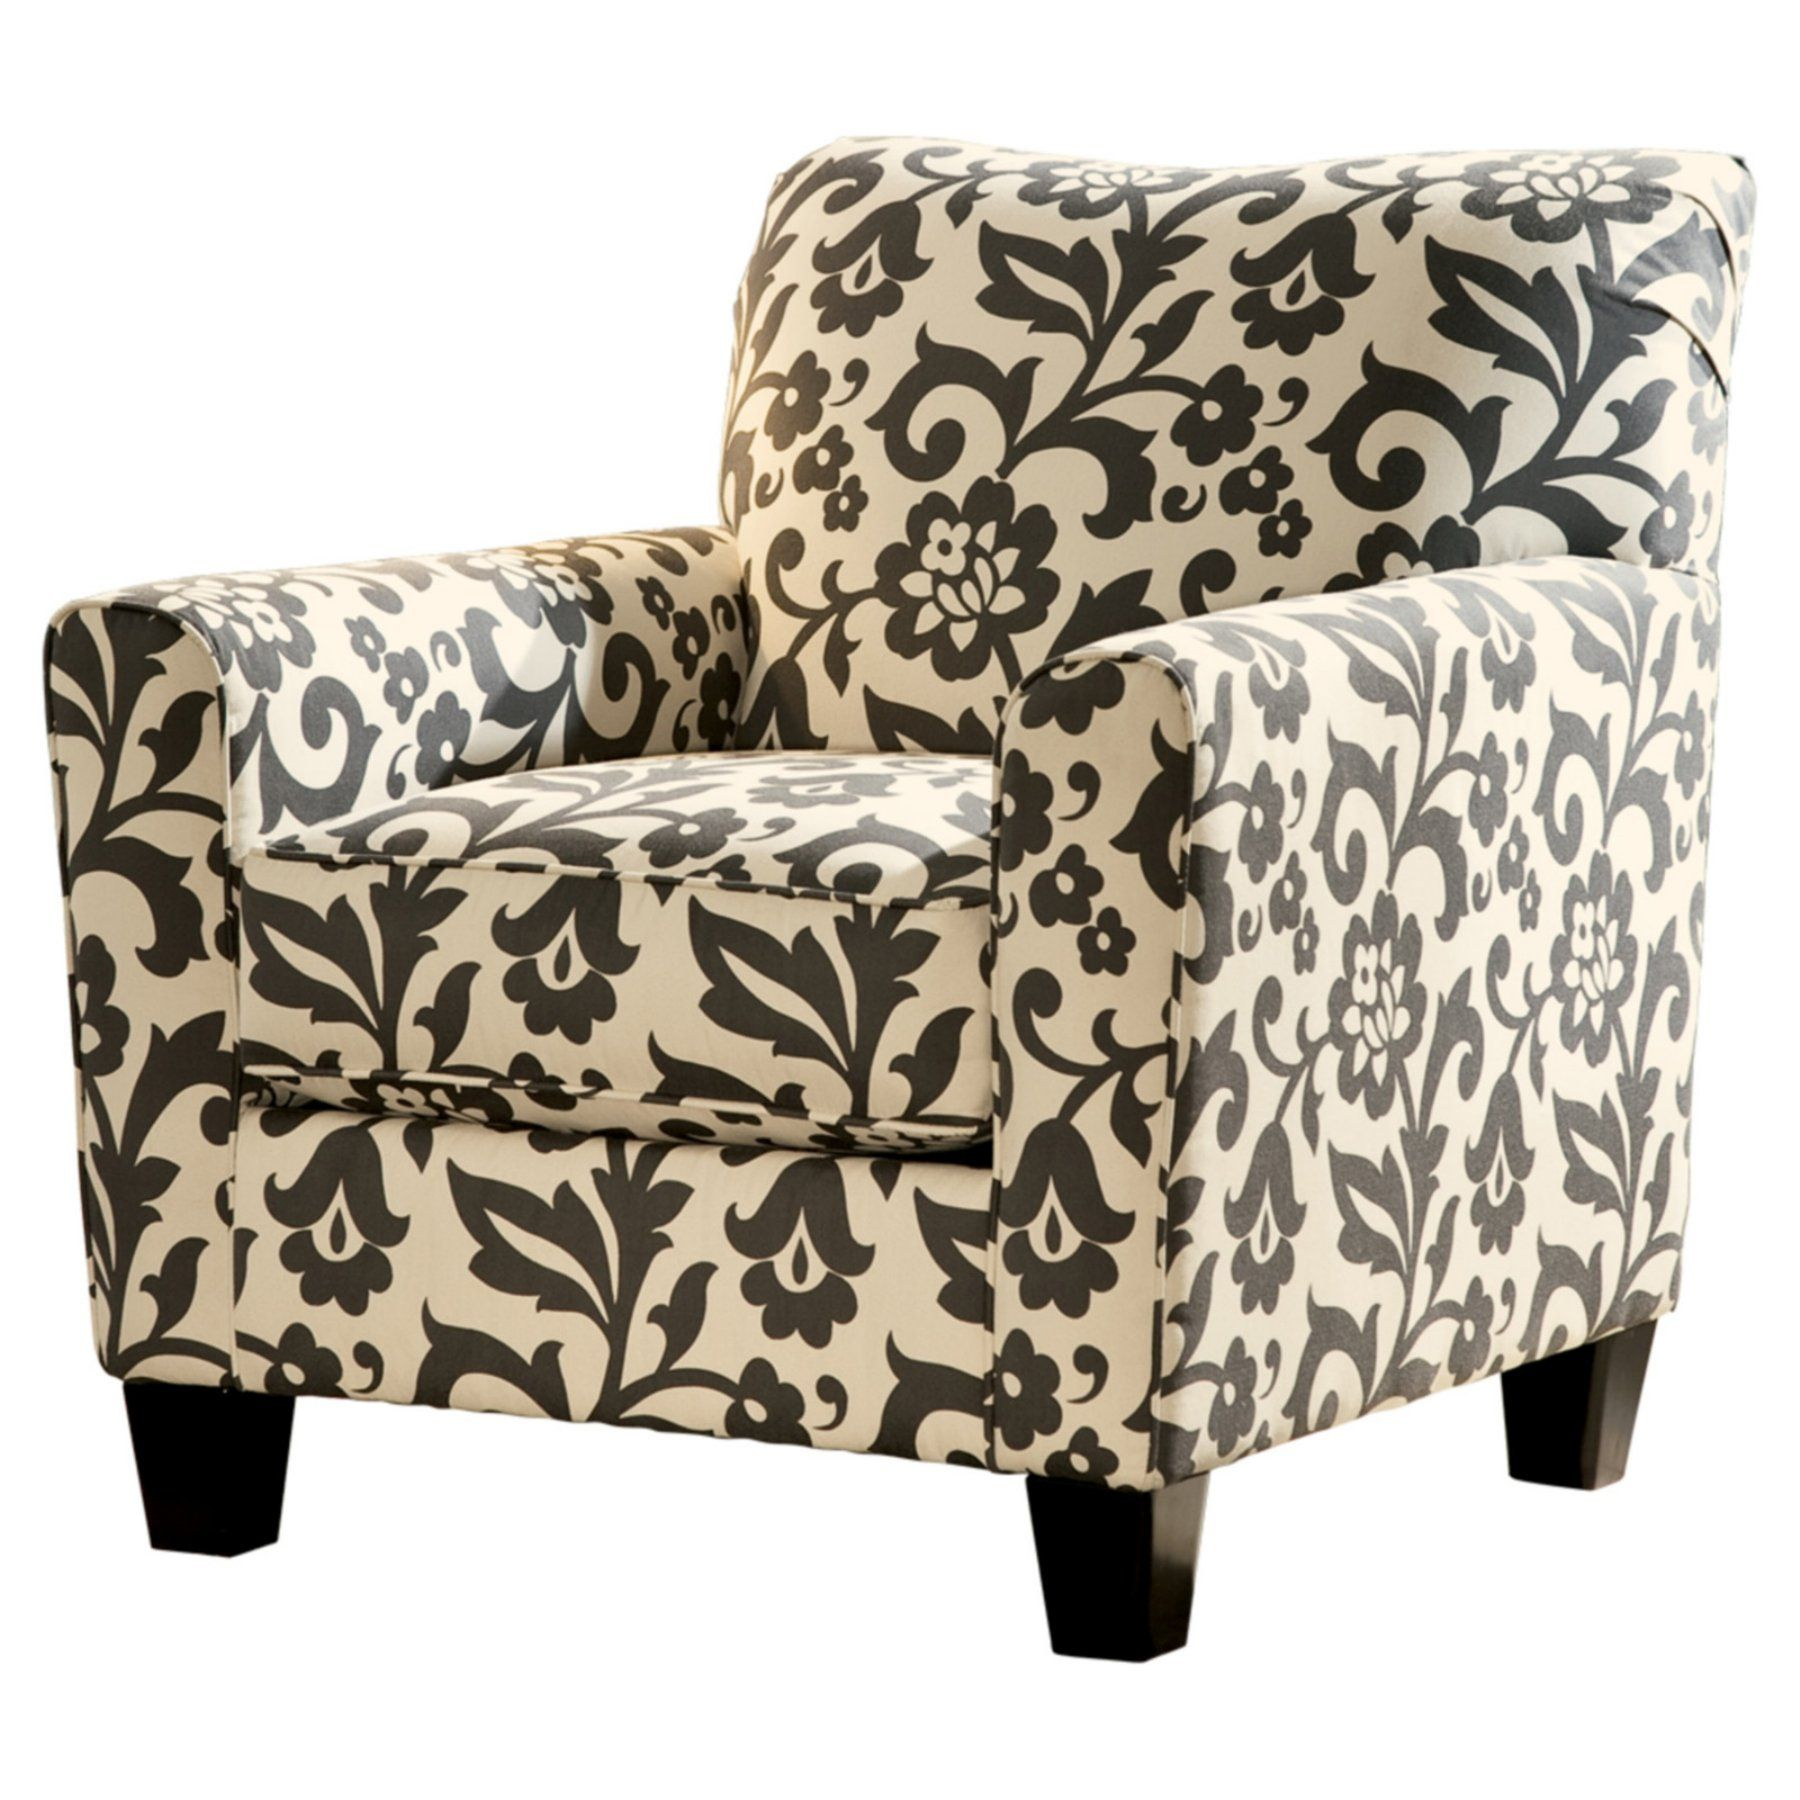 Signature Design By Ashley Levon Floral Accent Chair  7340321